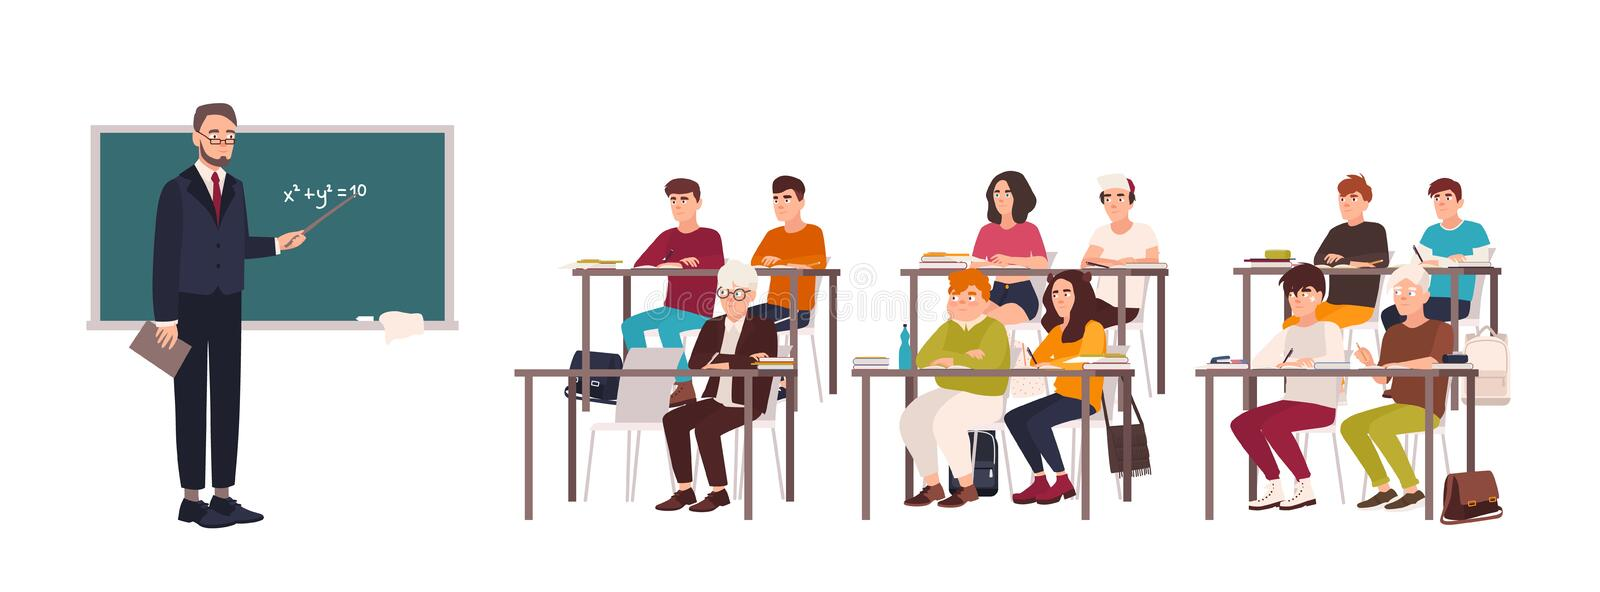 Pupils sitting at desks in classroom, demonstrating good behavior and attentively listening to teacher standing beside vector illustration